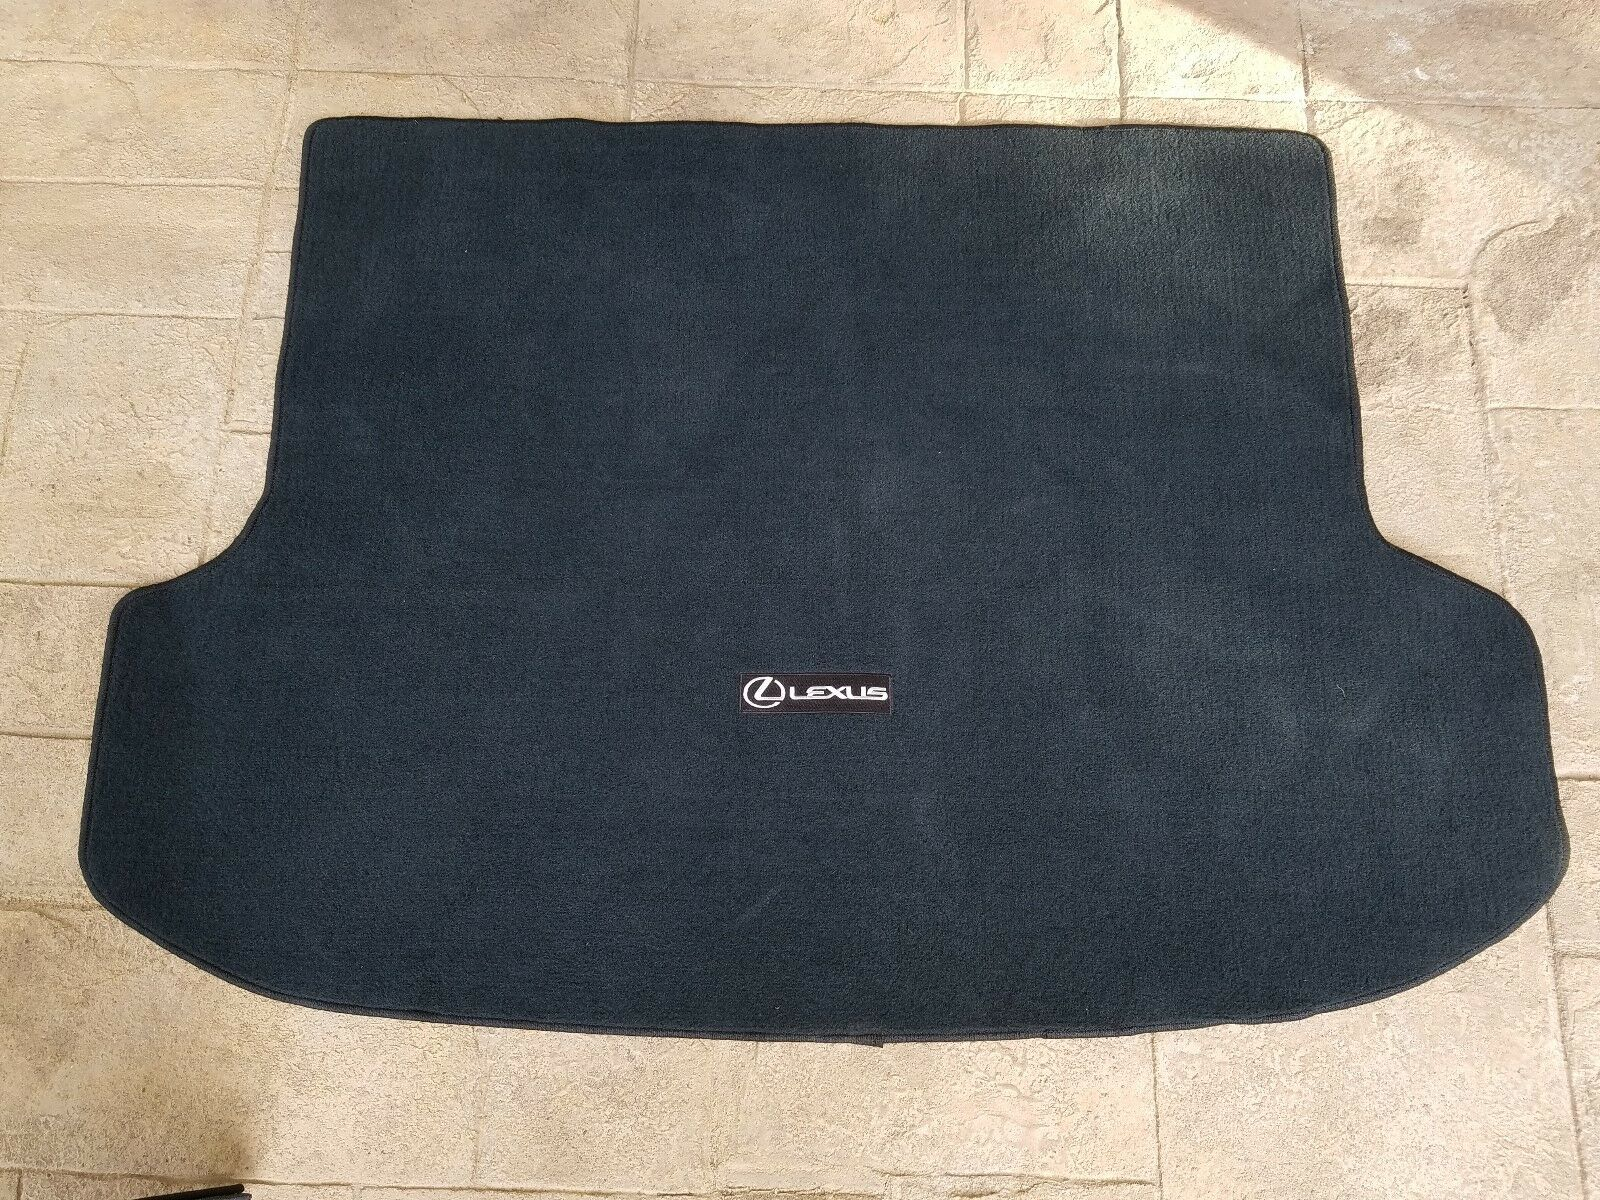 Used Lexus Floor Mats & Carpets for Sale - Page 3